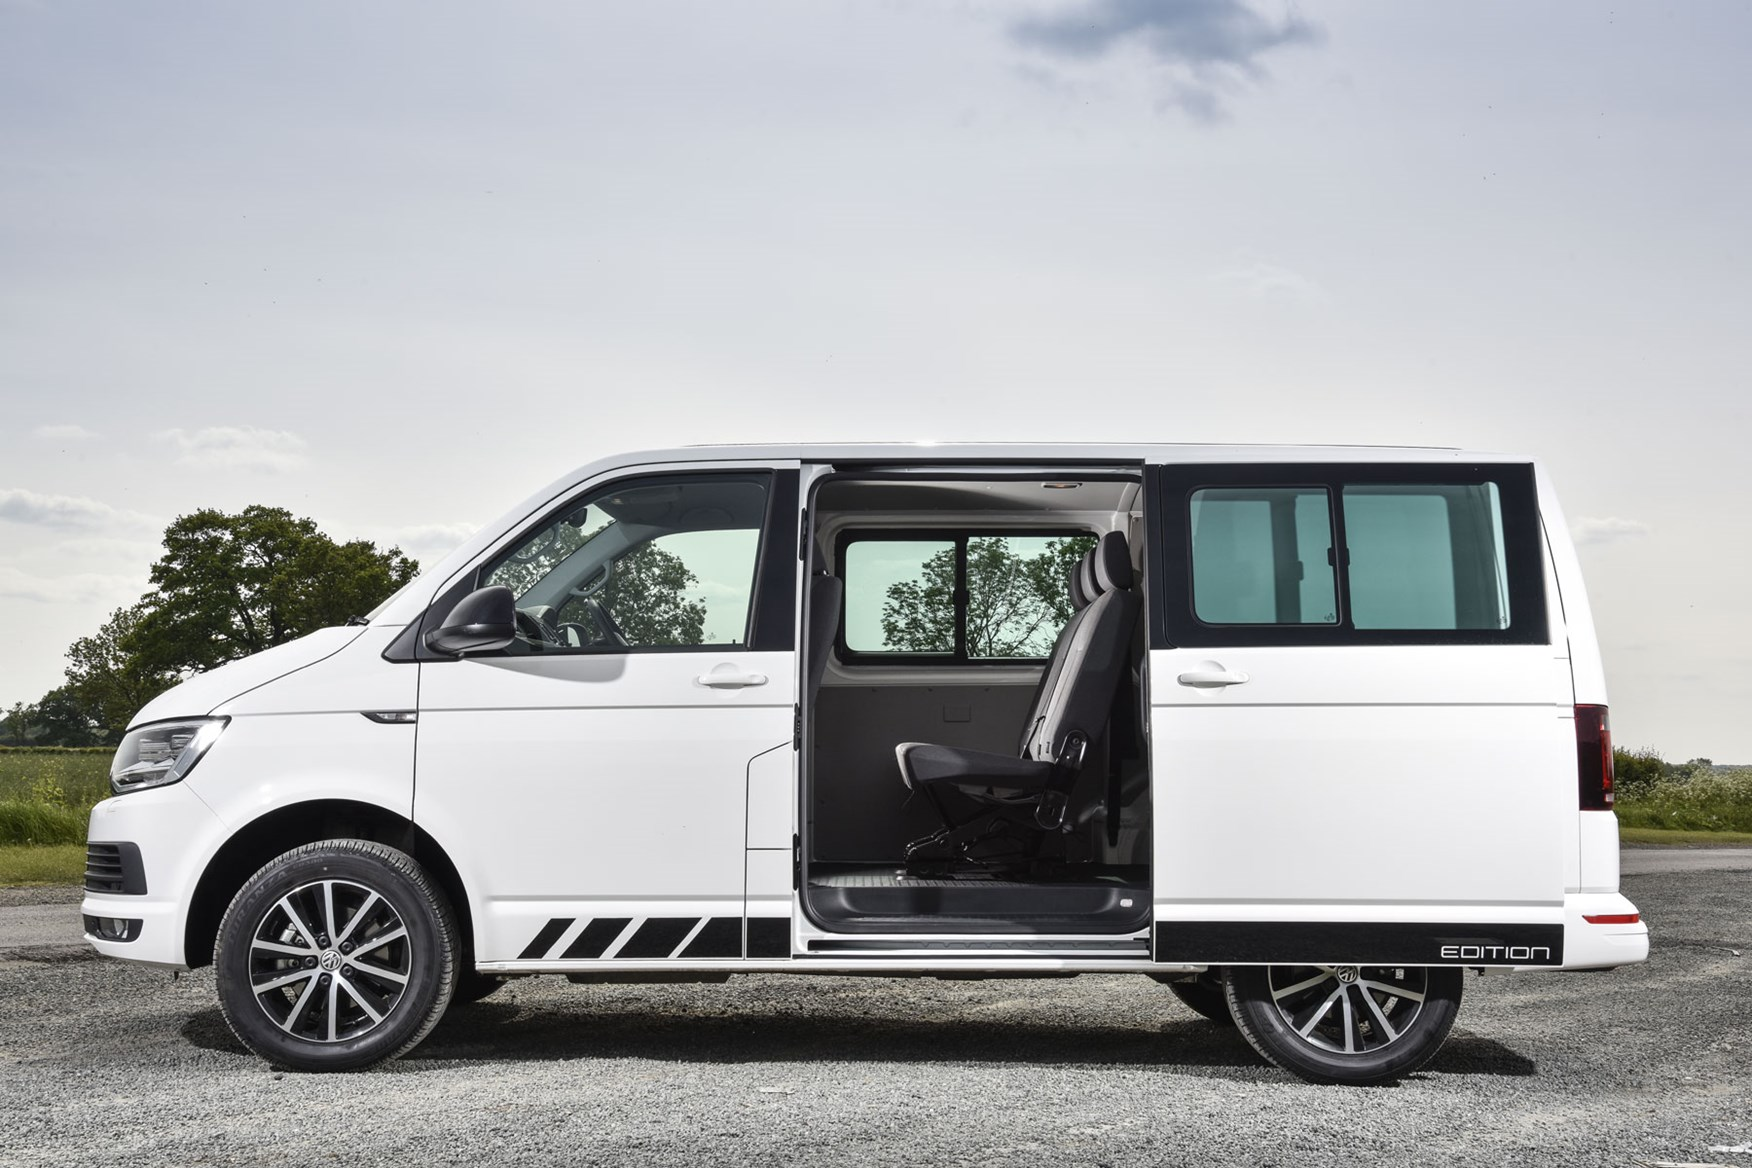 Vw Transporter Edition Kombi 150 Tdi Review Parkers